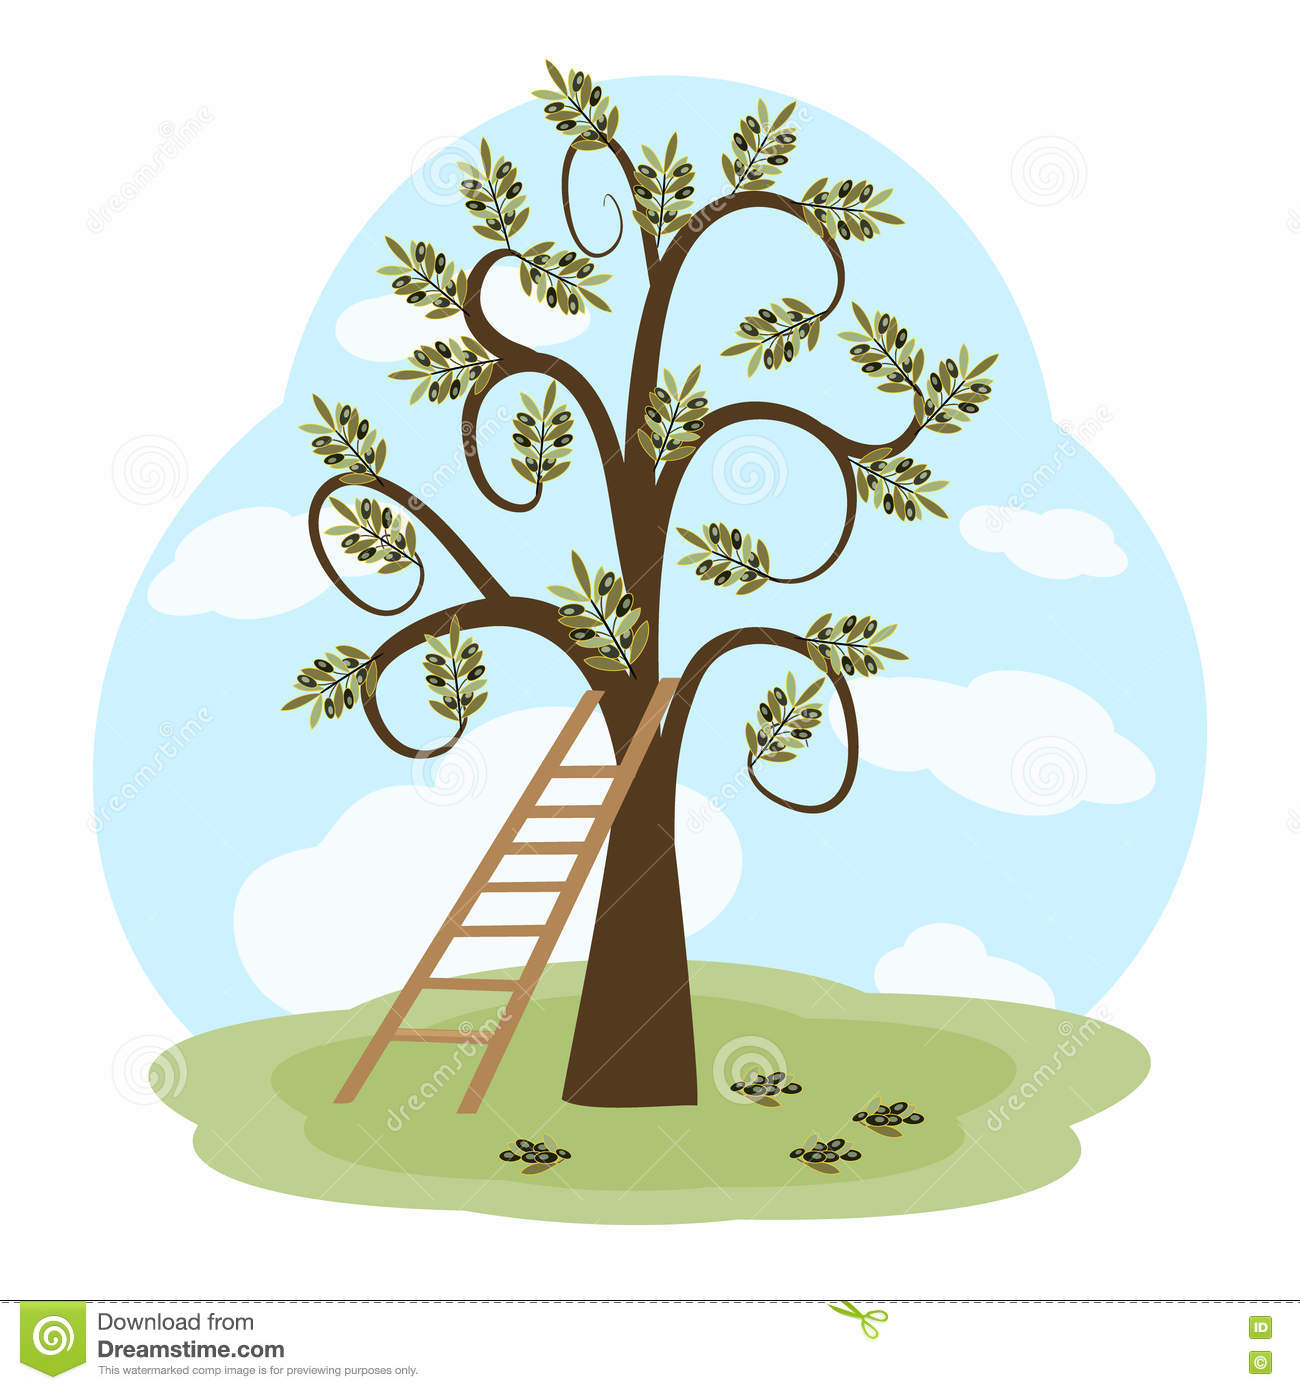 The Olive Tree And A Ladder Stock Vector.